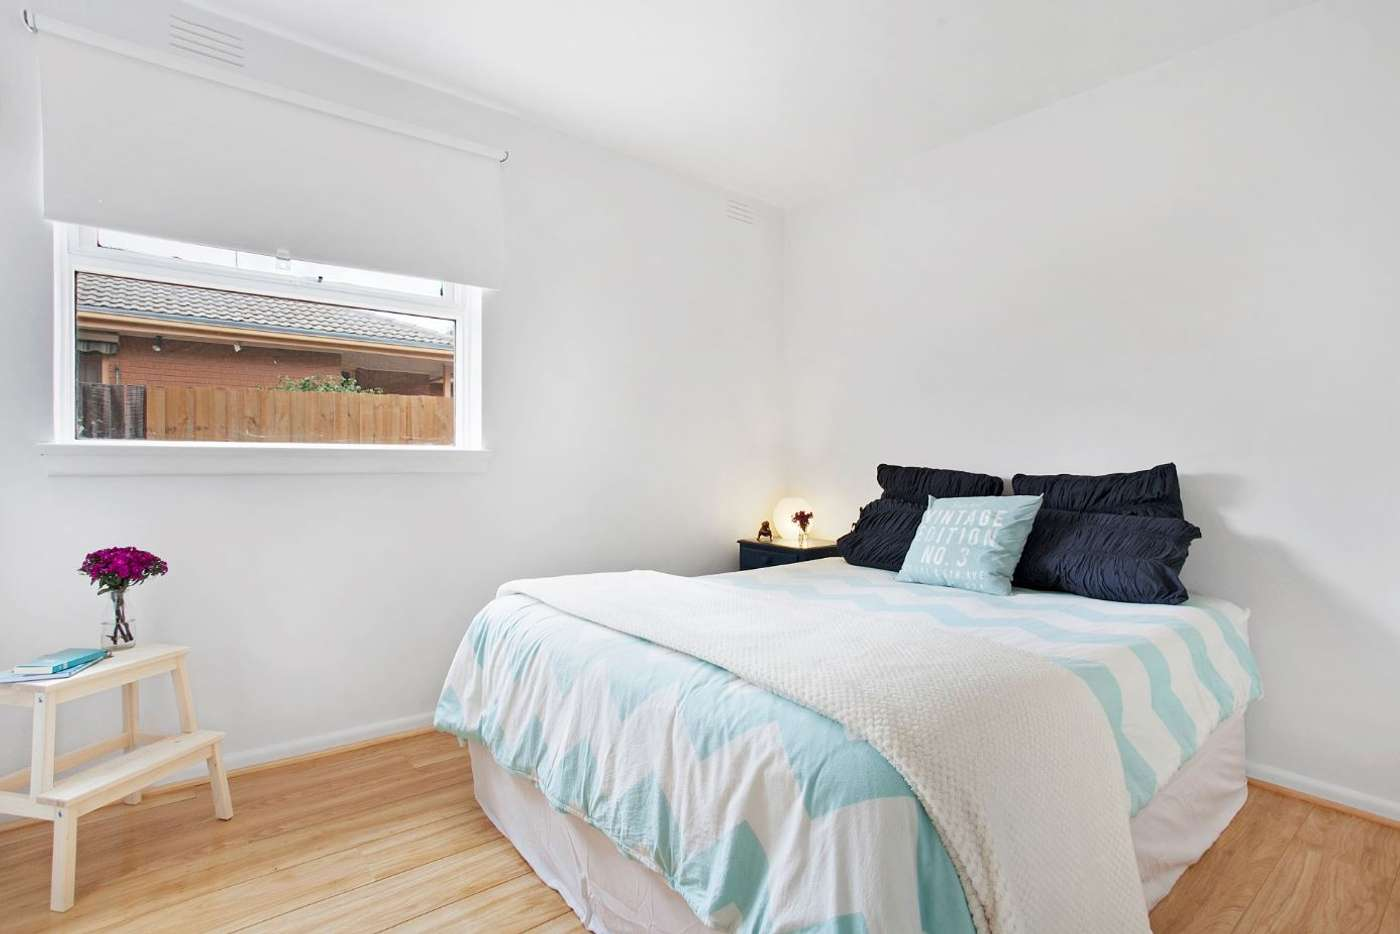 Sixth view of Homely apartment listing, 8/16 Newlyn Street, Caulfield VIC 3162